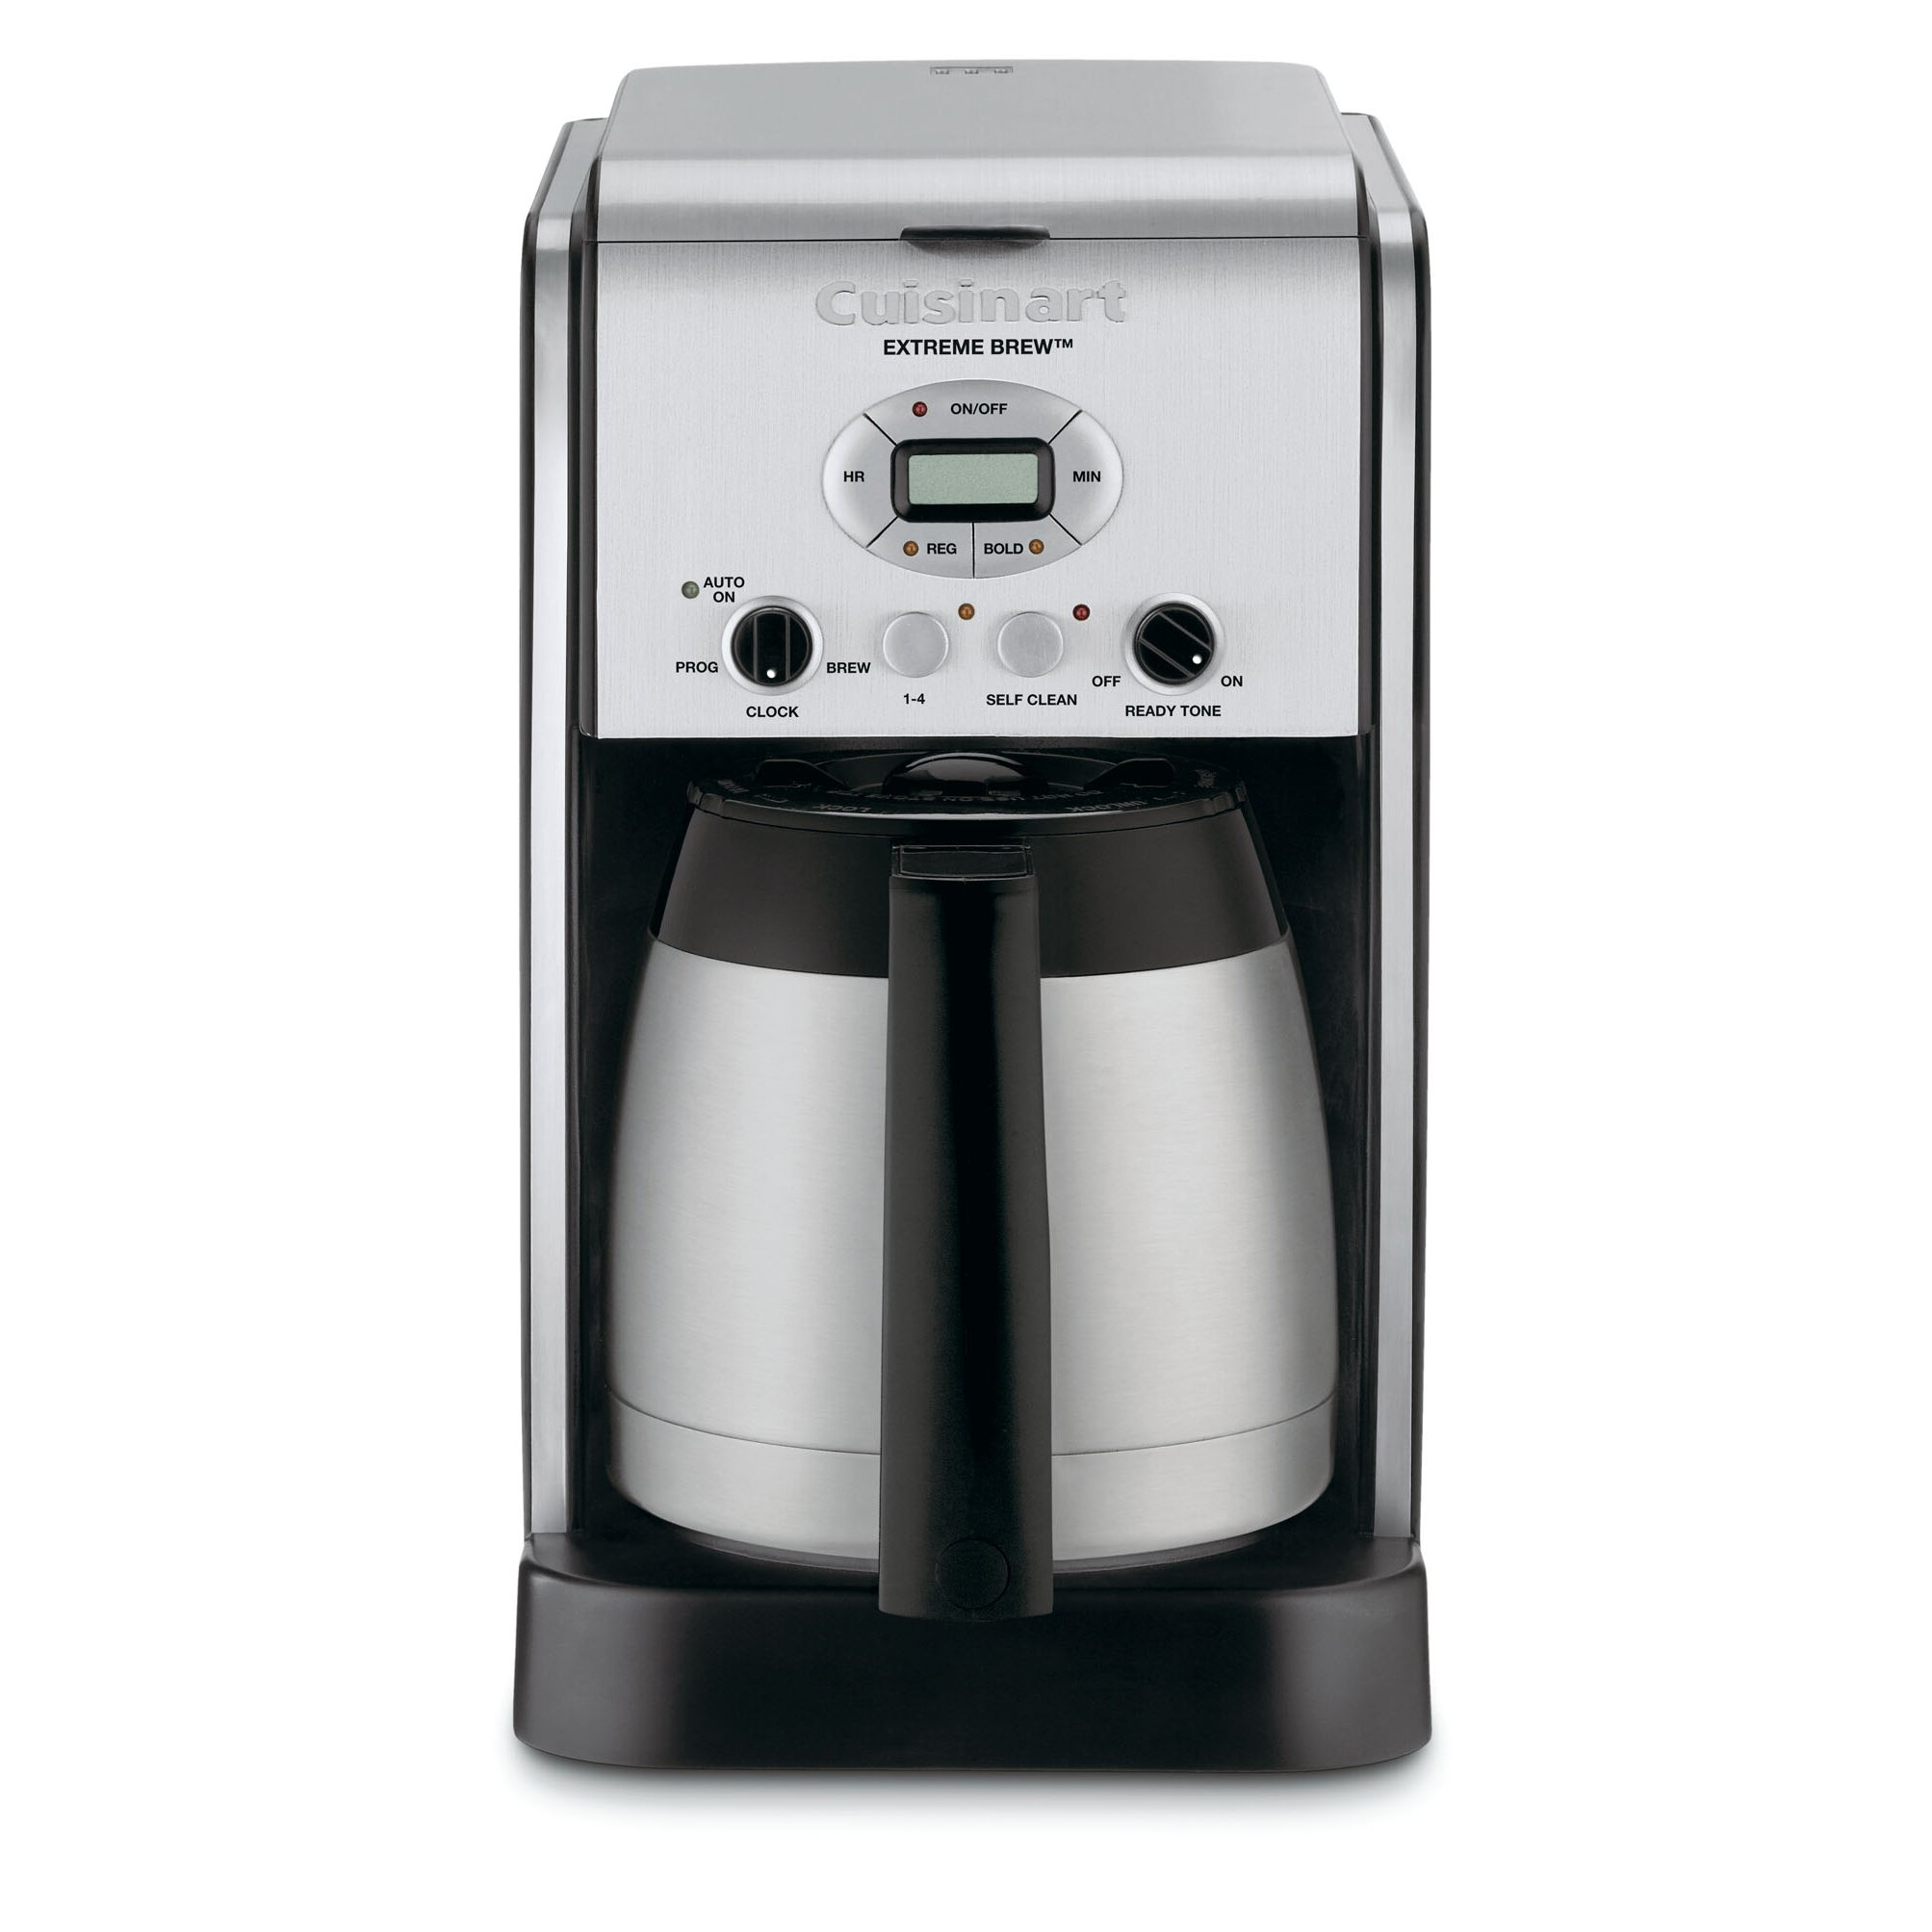 Programmable Thermal Coffee Maker Reviews : Cuisinart Extreme Brew 10 Cup Thermal Programmable Coffee Maker & Reviews Wayfair